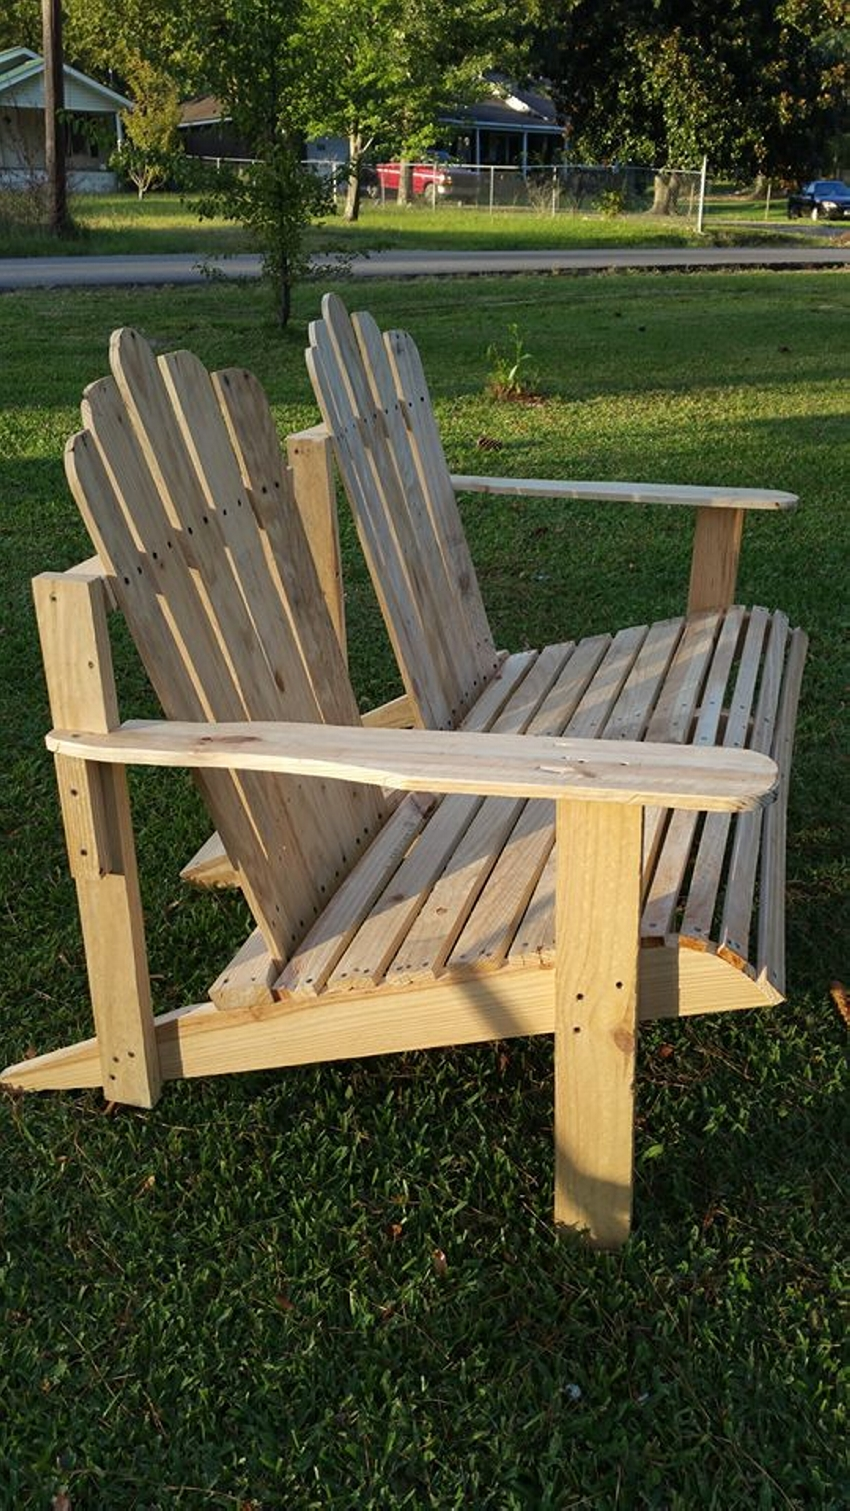 Wooden Pallet Adirondack Bench Chair Pallet Ideas Recycled Upcycled Pallets Furniture Projects